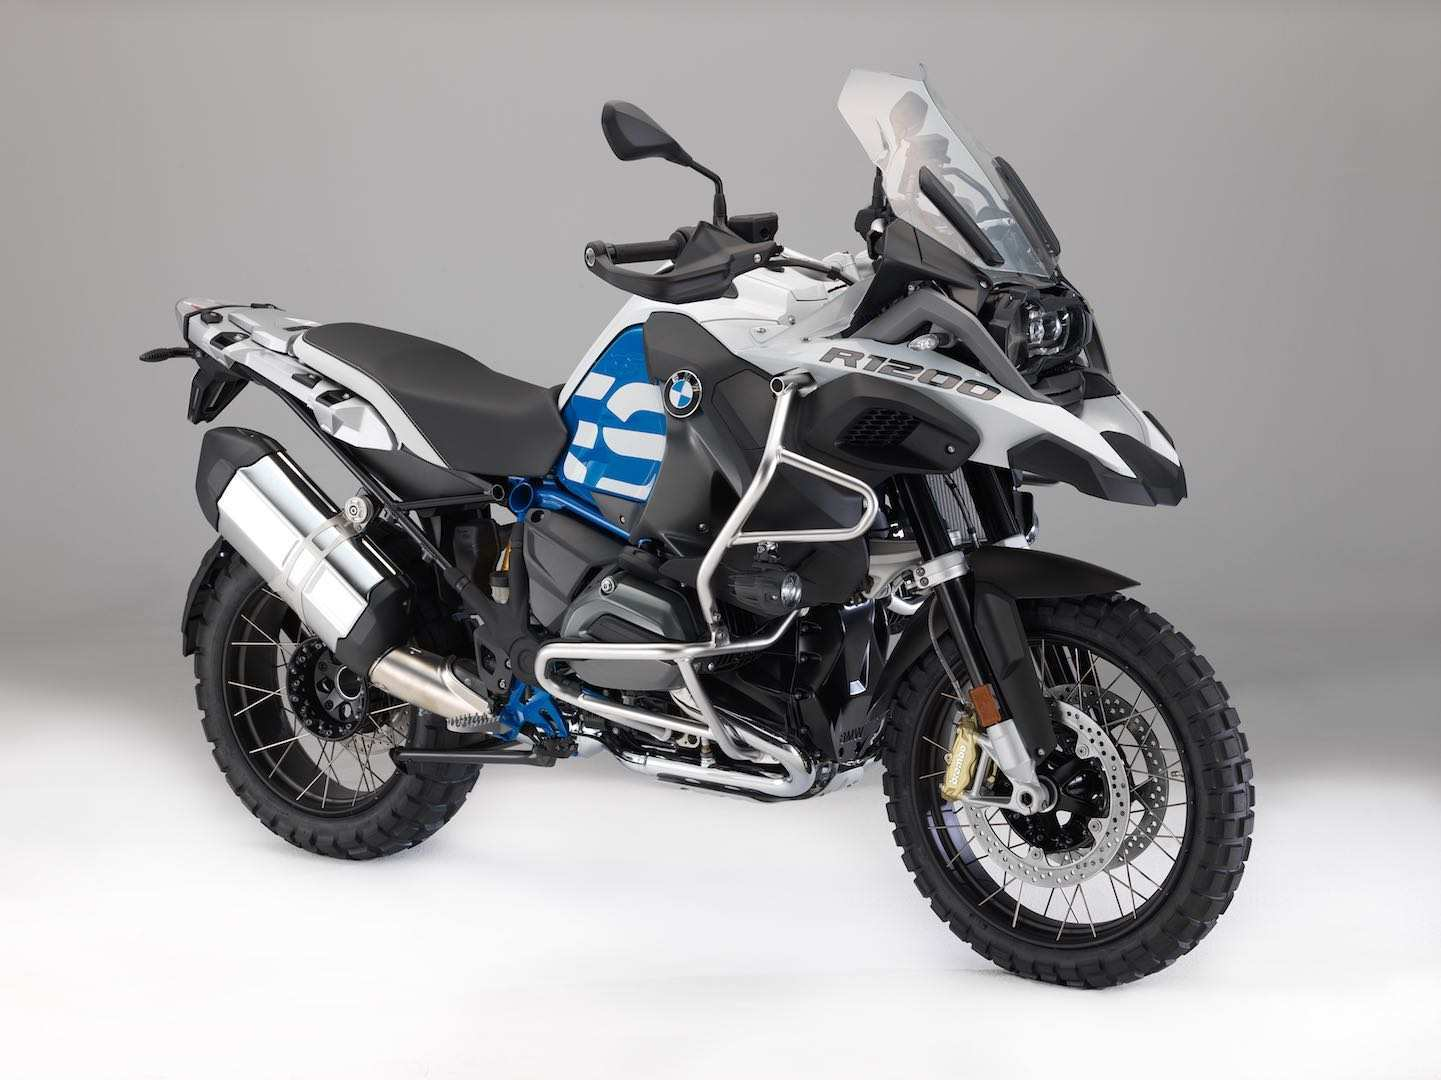 95 Concept of 2020 Bmw Gs Reviews with 2020 Bmw Gs